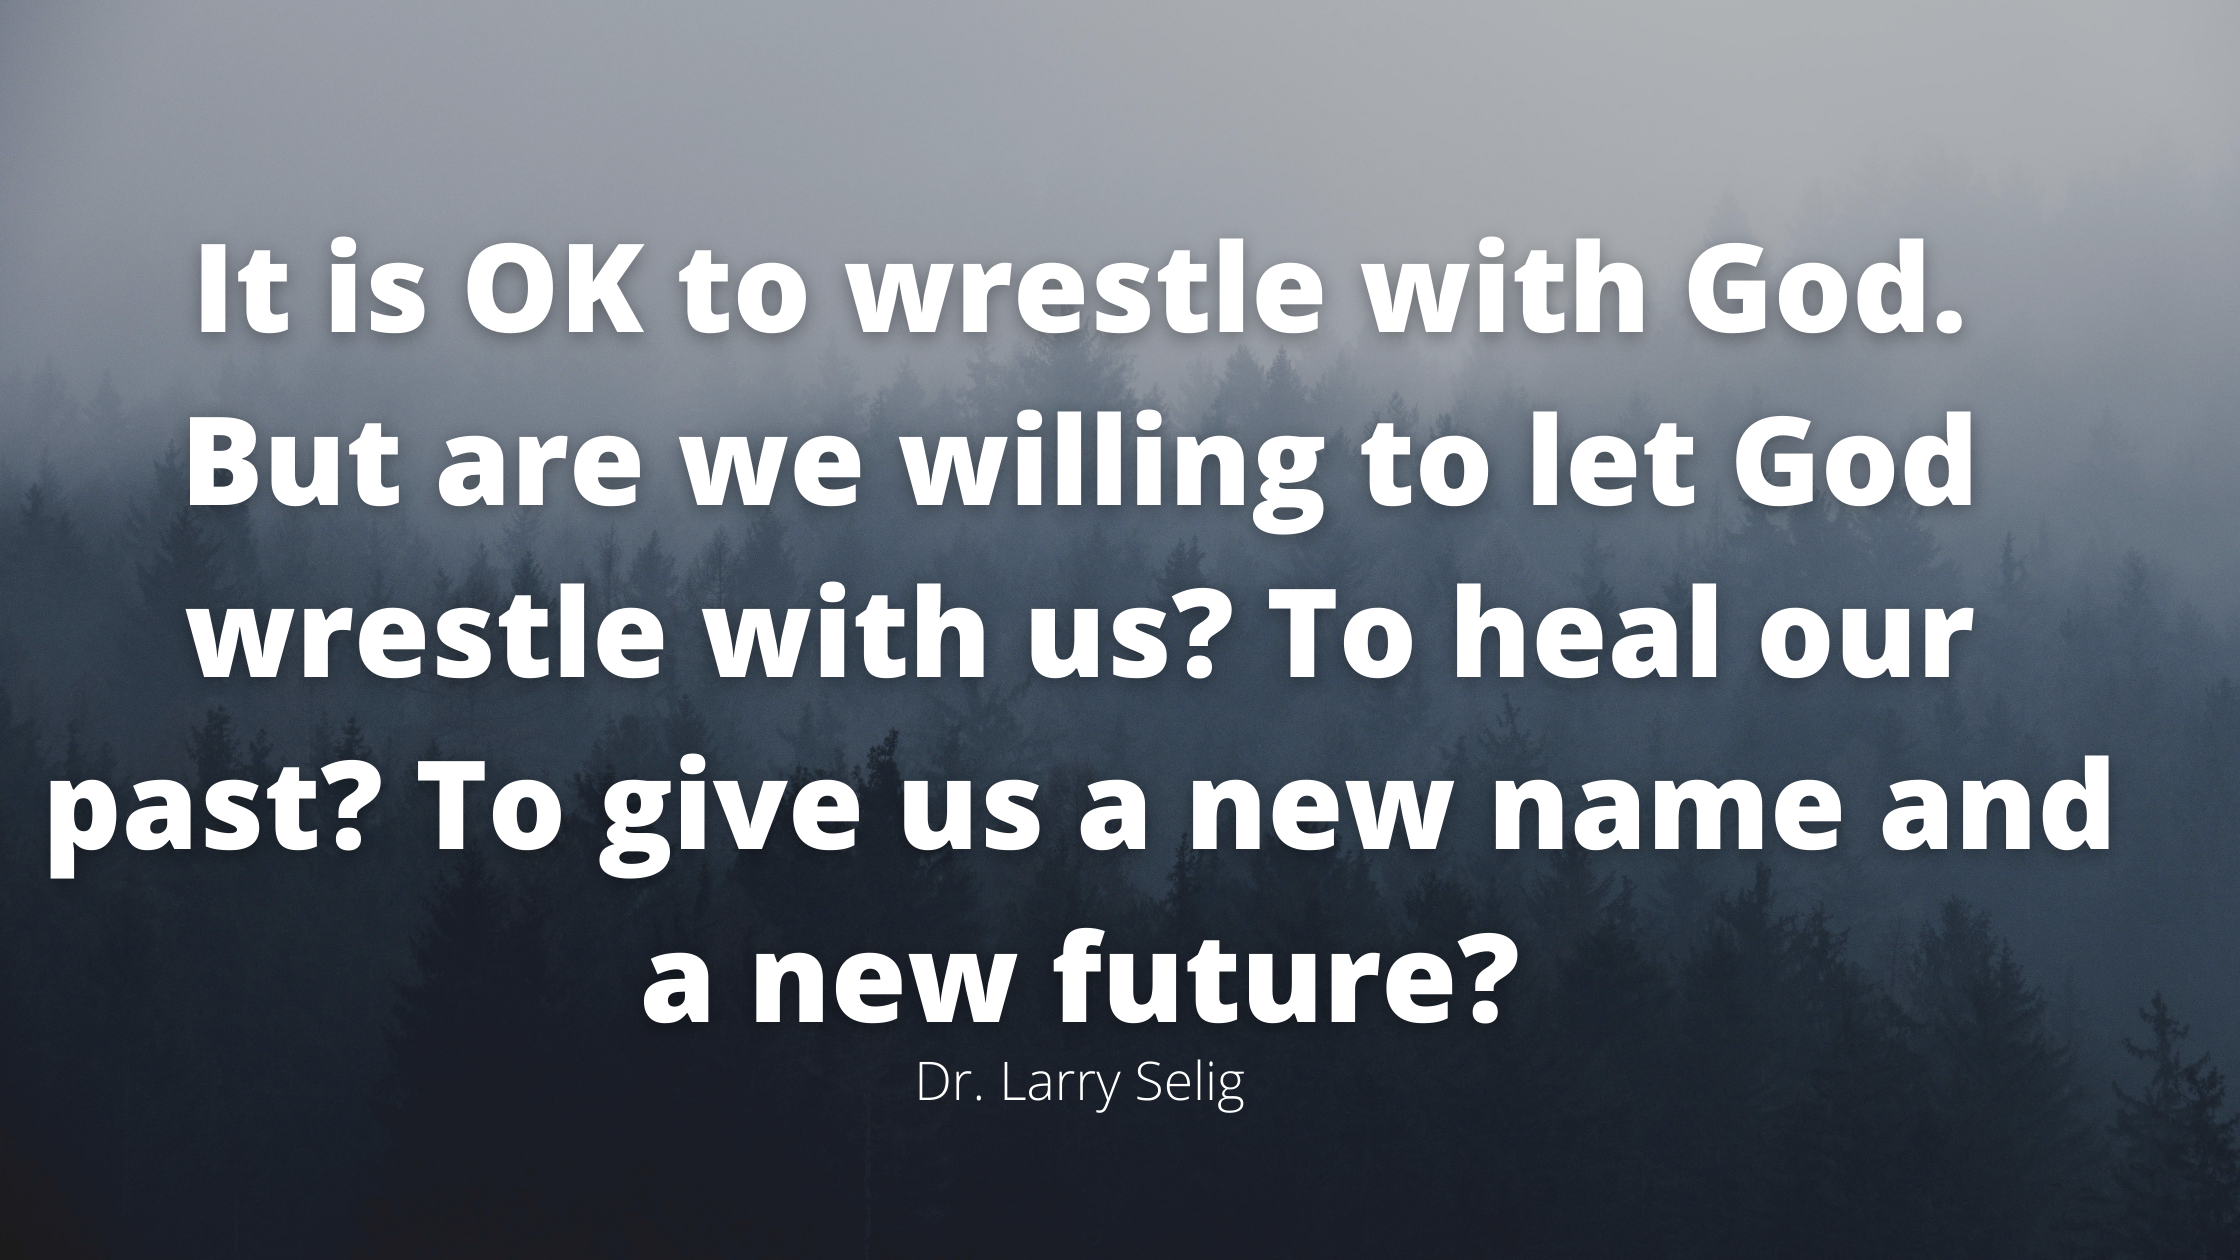 It is OK to wrestle with God. But are we willing to let God wrestle with us? To heal our past? To give us a new name and a new future?